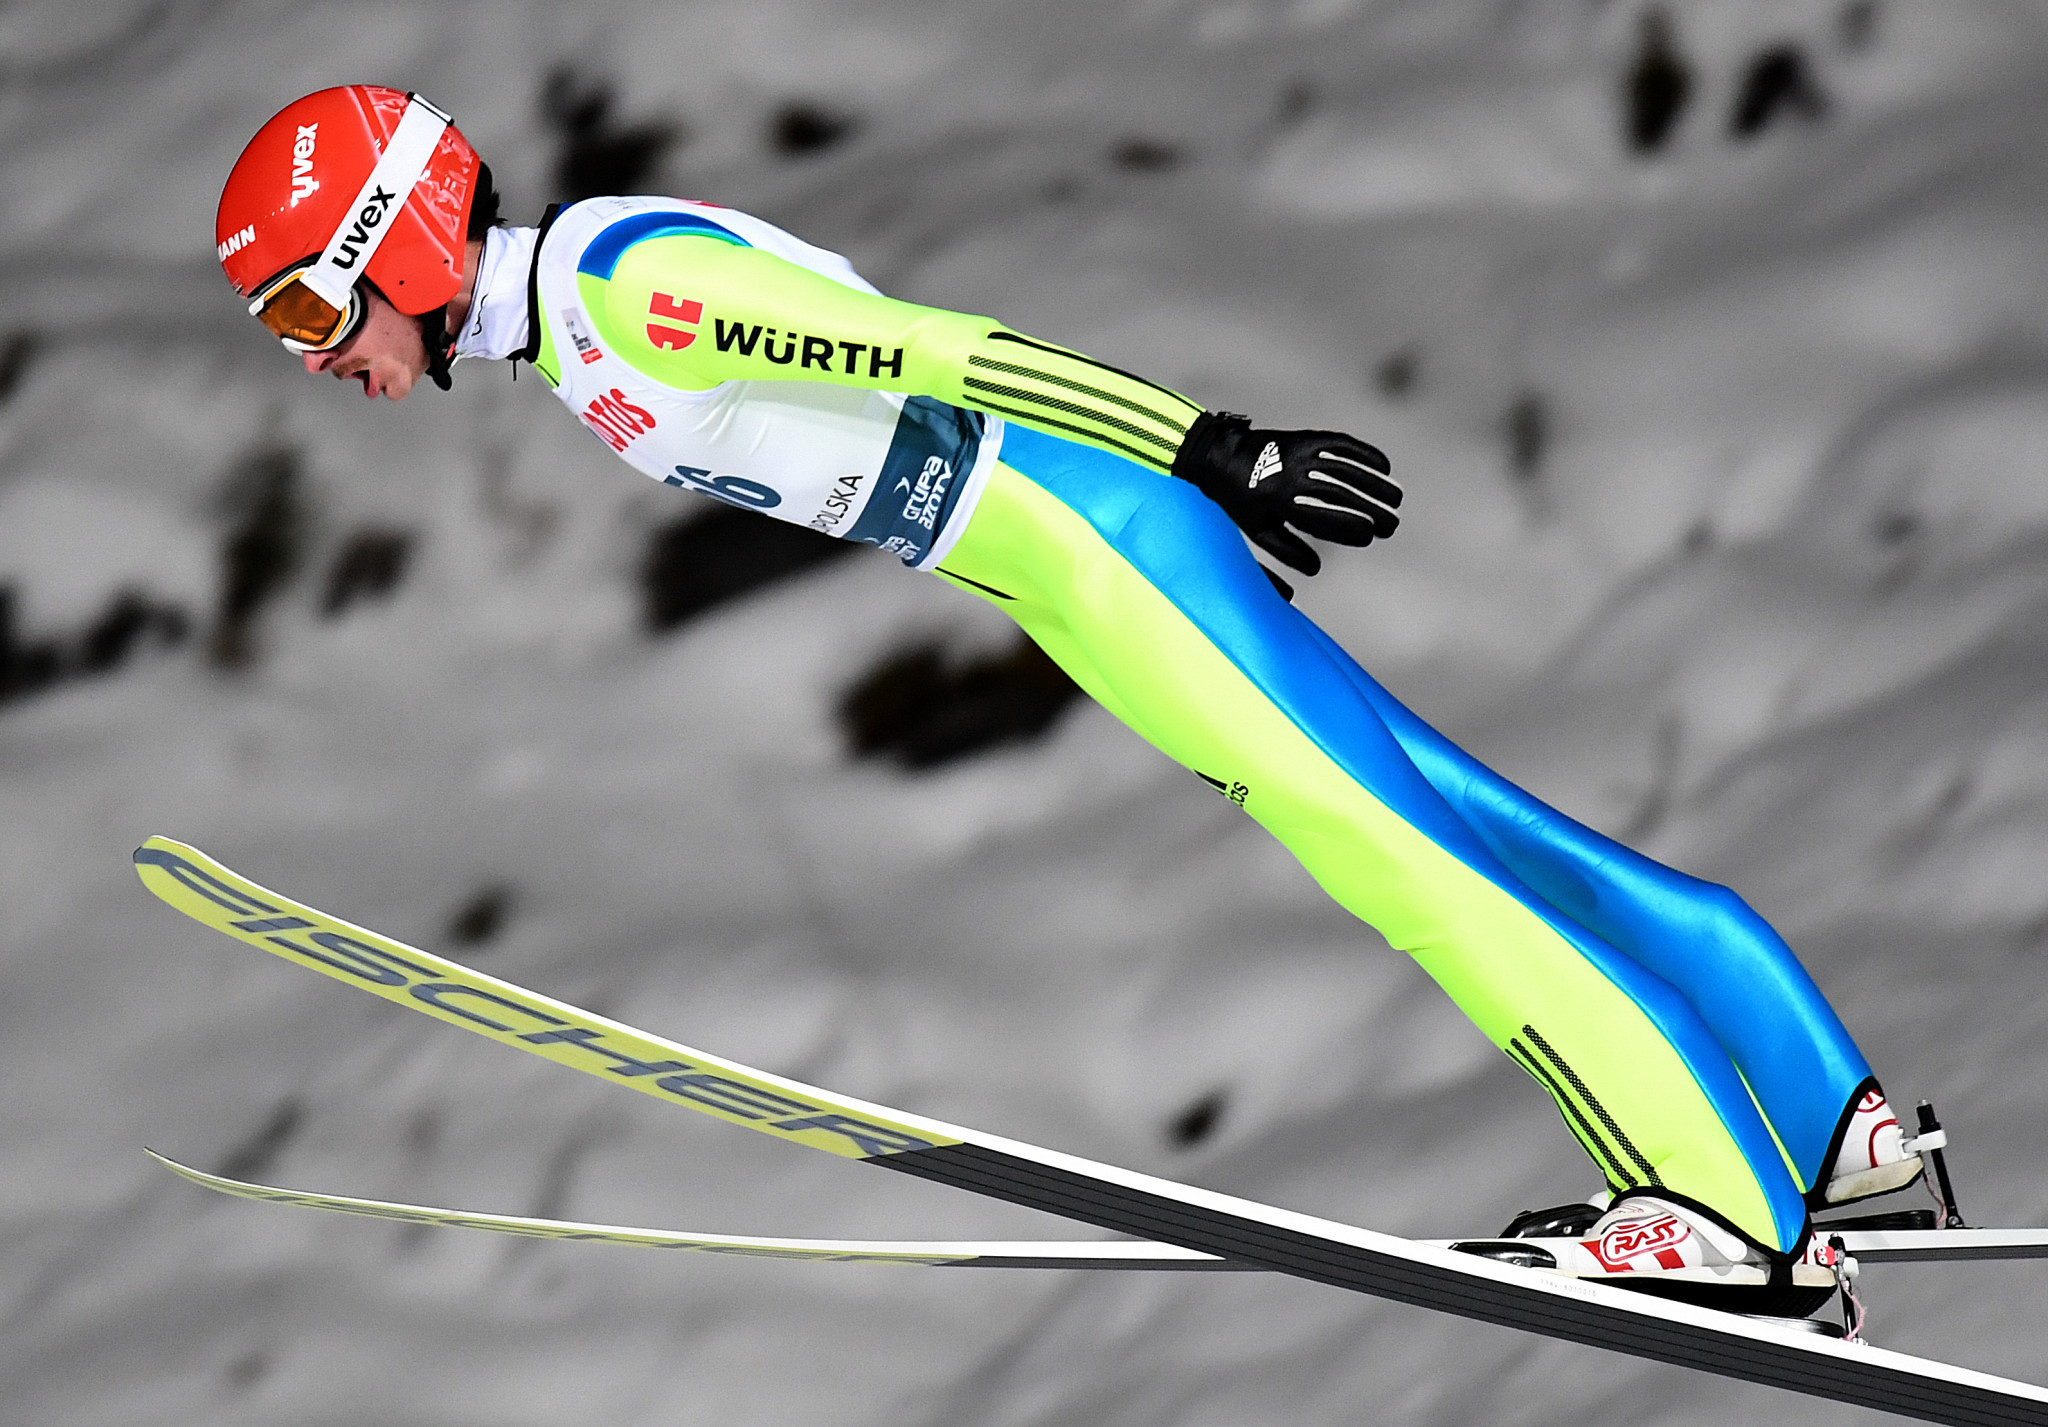 FIS Ski Jumping World Cup moves to Willingen for final event before Pyeongchang 2018